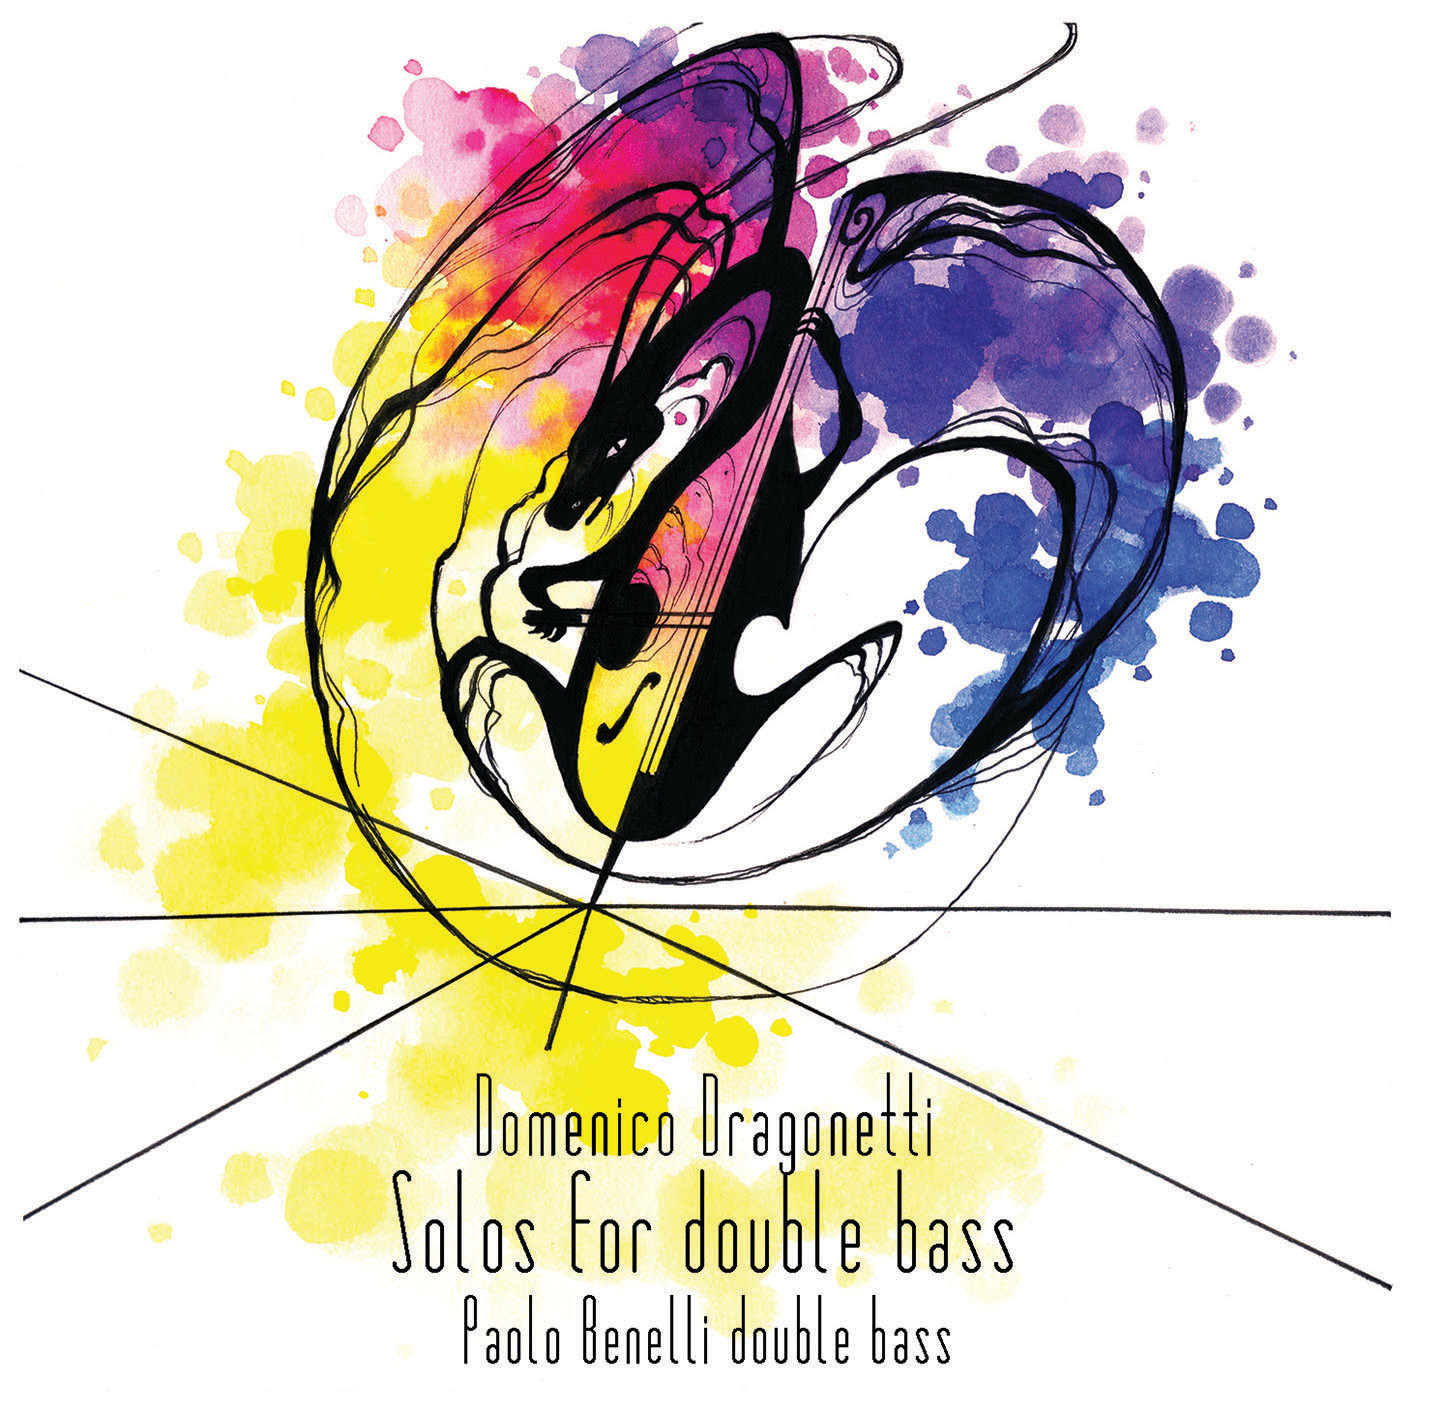 MP3 Domenico Dragonetti, Solos for double bass - Paolo Benelli